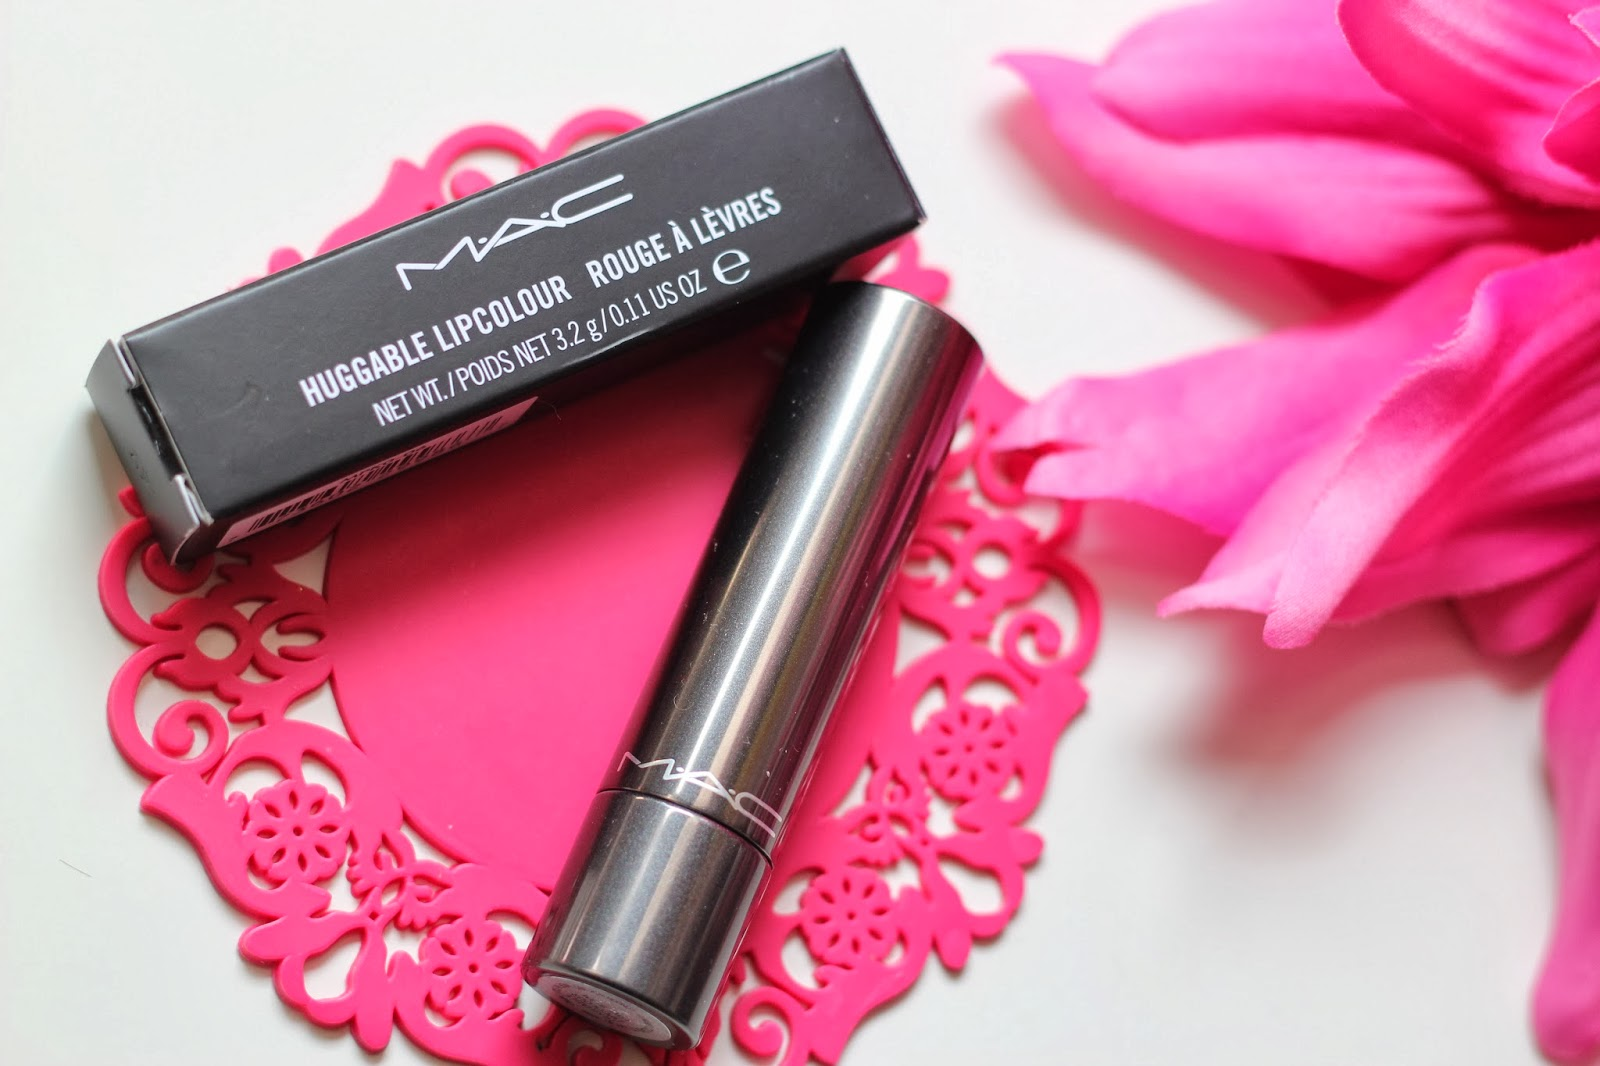 photo_MAC_huggable_lips_fuchsia_lovebeam